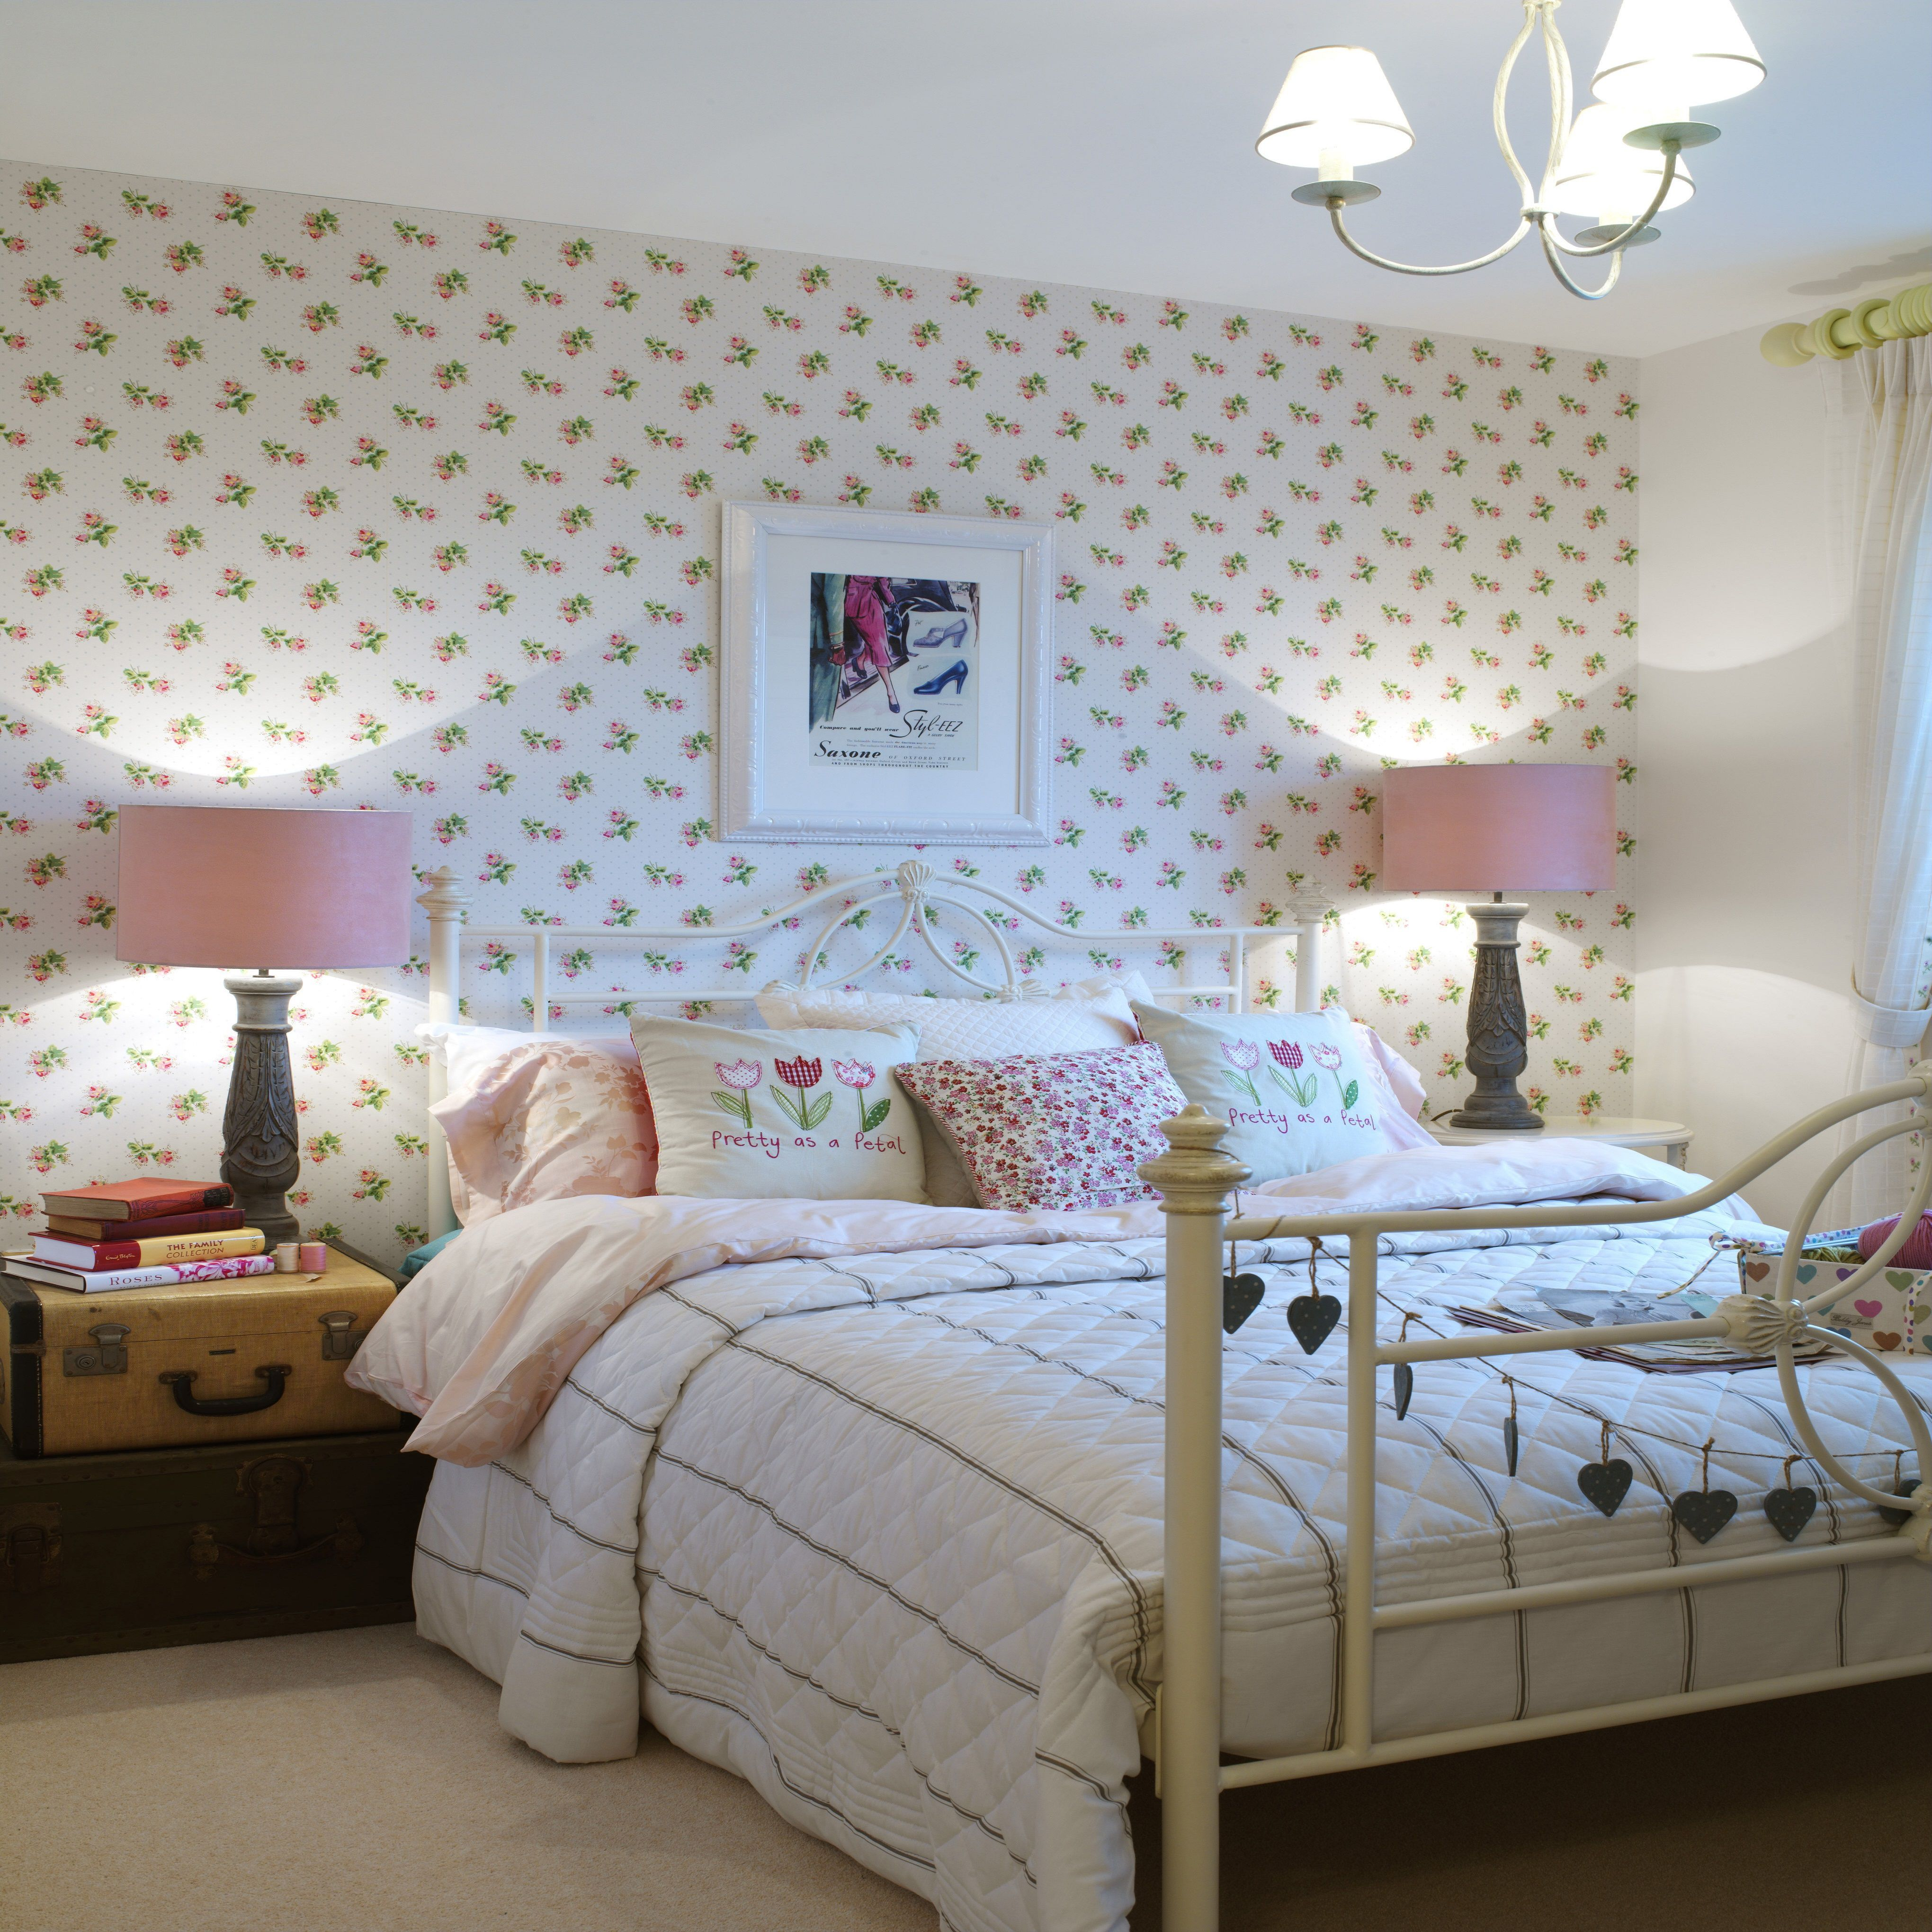 Also, the chandelier lighting seems antique in that manner. Photos And Tips For Decorating A Shabby Chic Bedroom